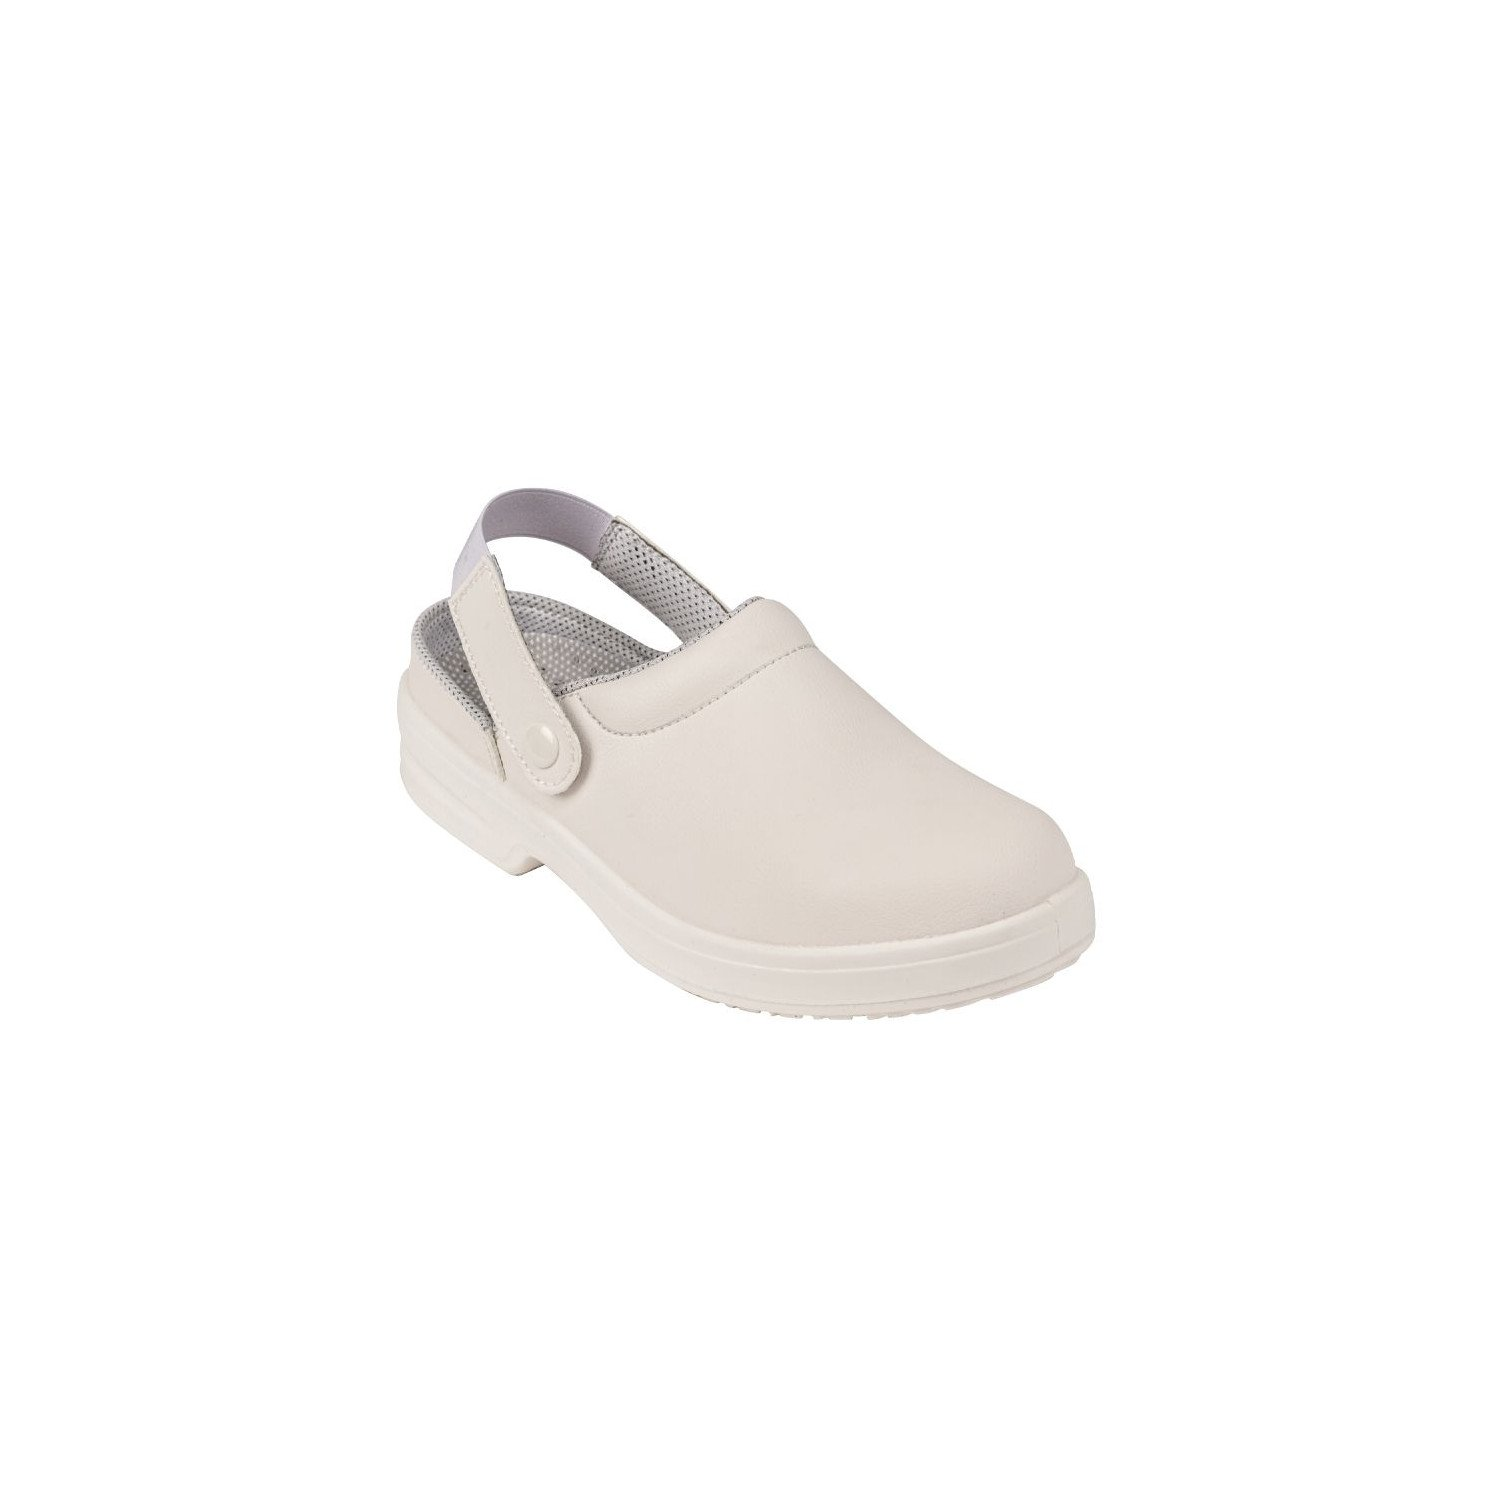 Sabots de sécurité unisexes Lites Blancs - Pointure 38 LITES SAFETY FOOTWEAR Nisbets Vêtements